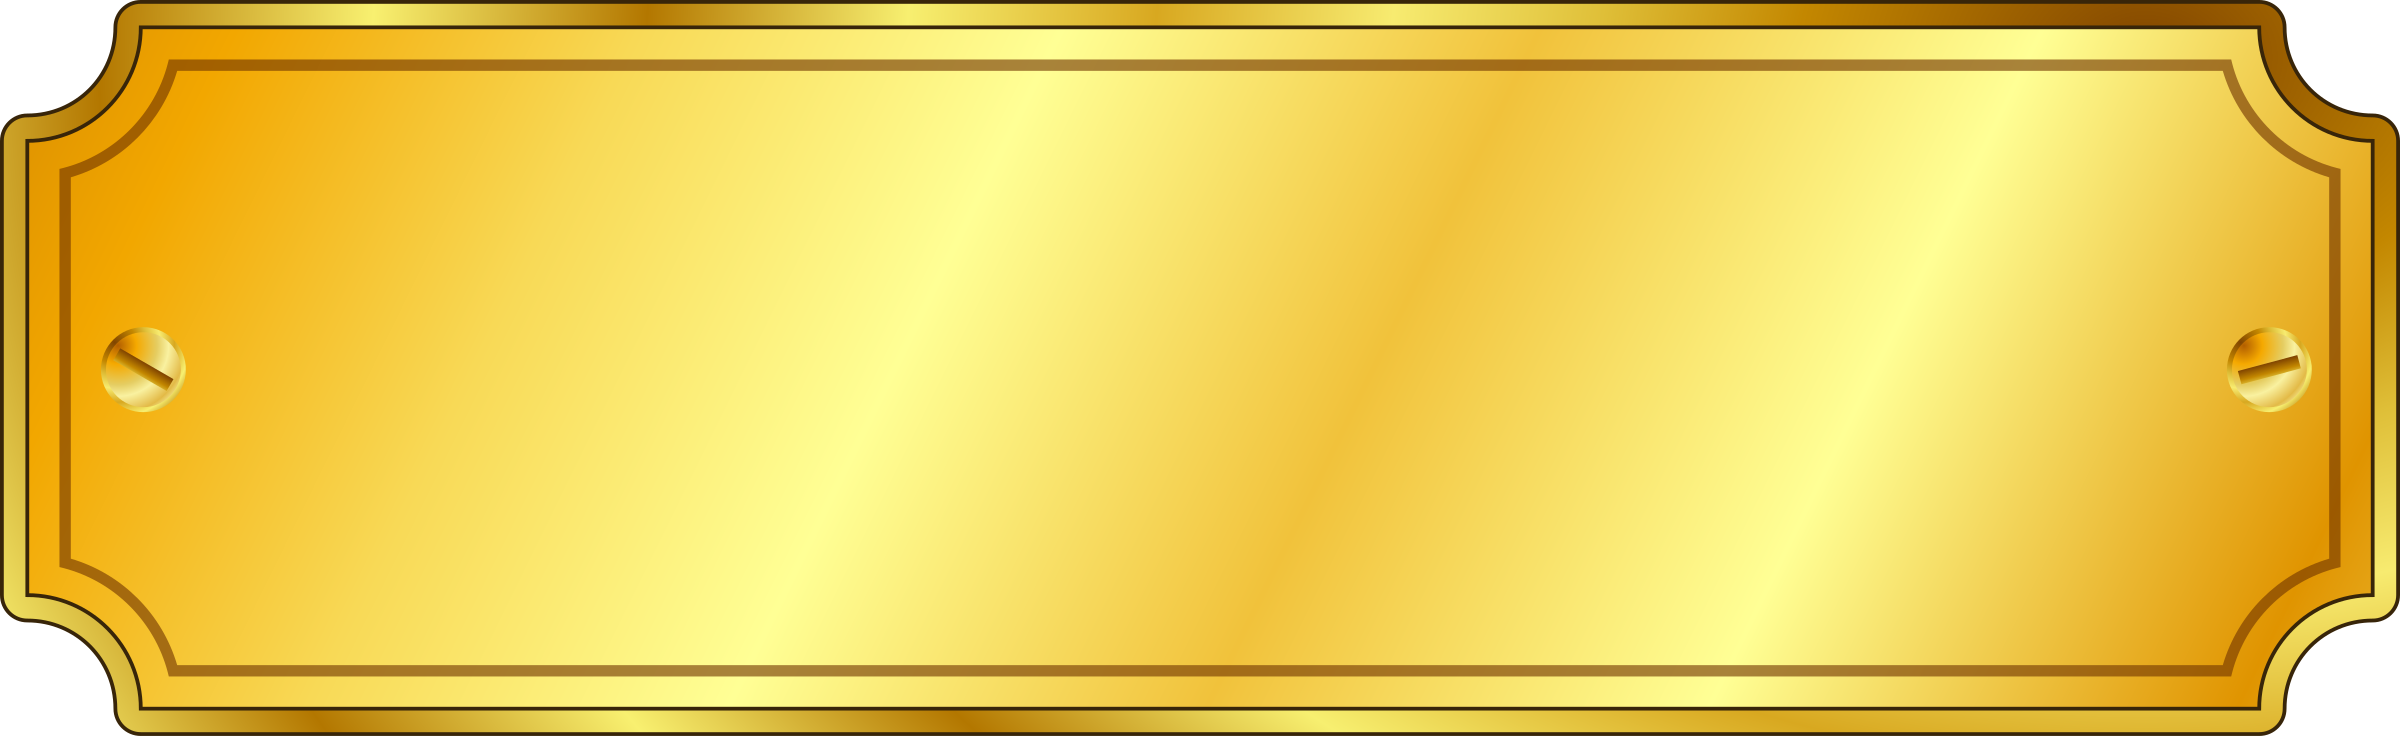 Gold PNG - 23966